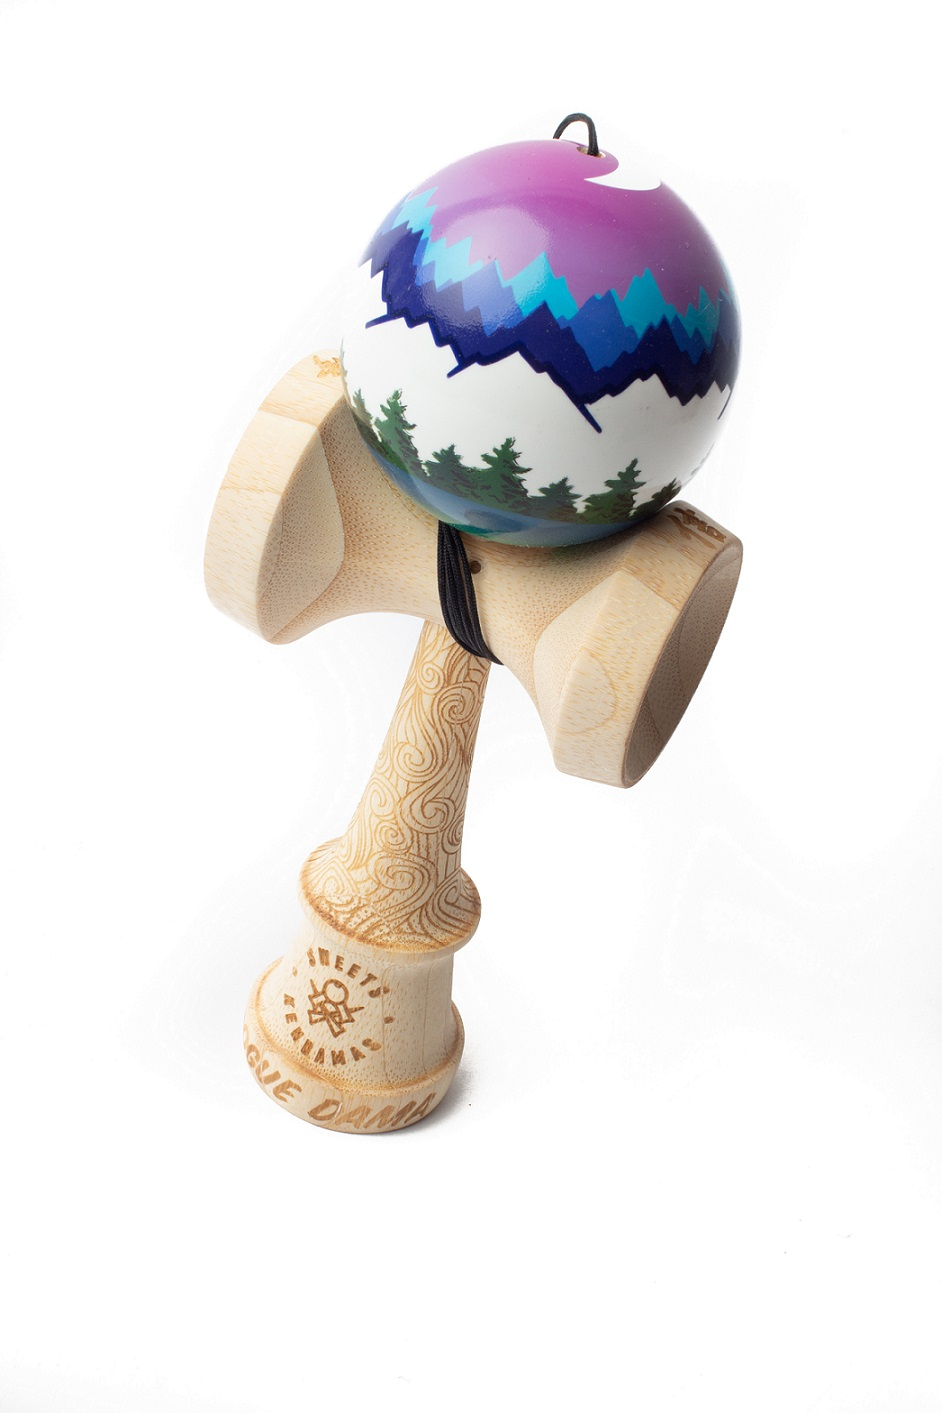 Sweets Kendamas - Joshua 'Flow' Grove - PRO MOD - BOOST